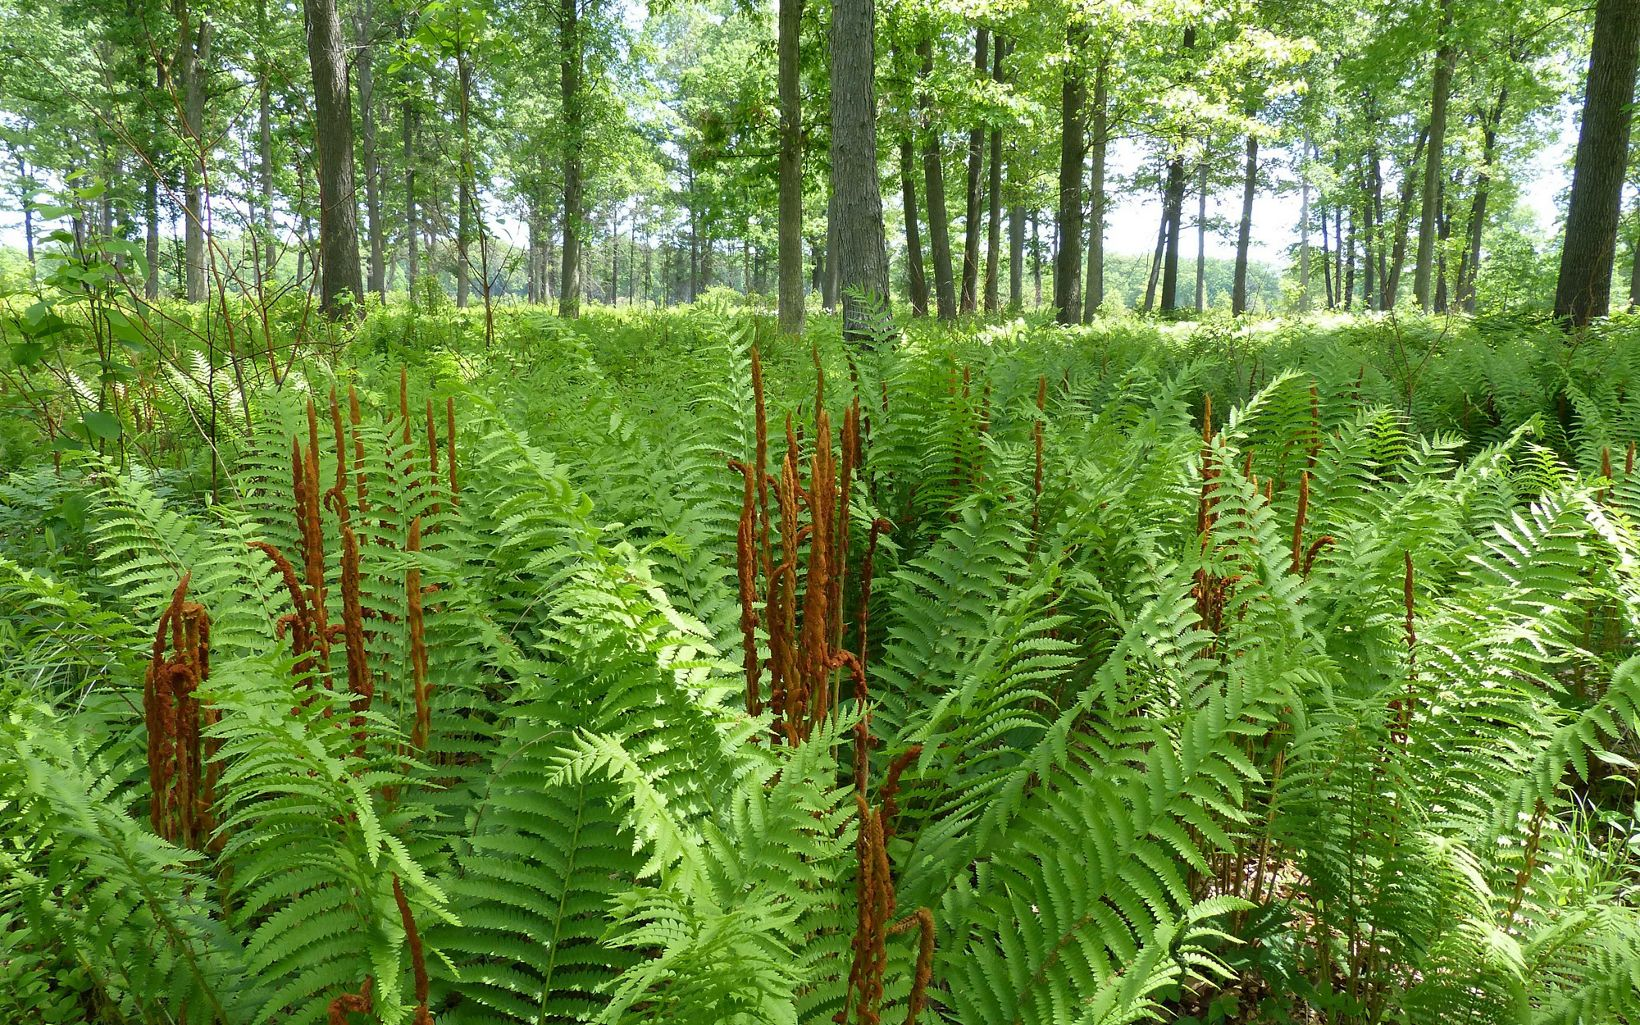 Cinnamon Ferns among the oak savanna.